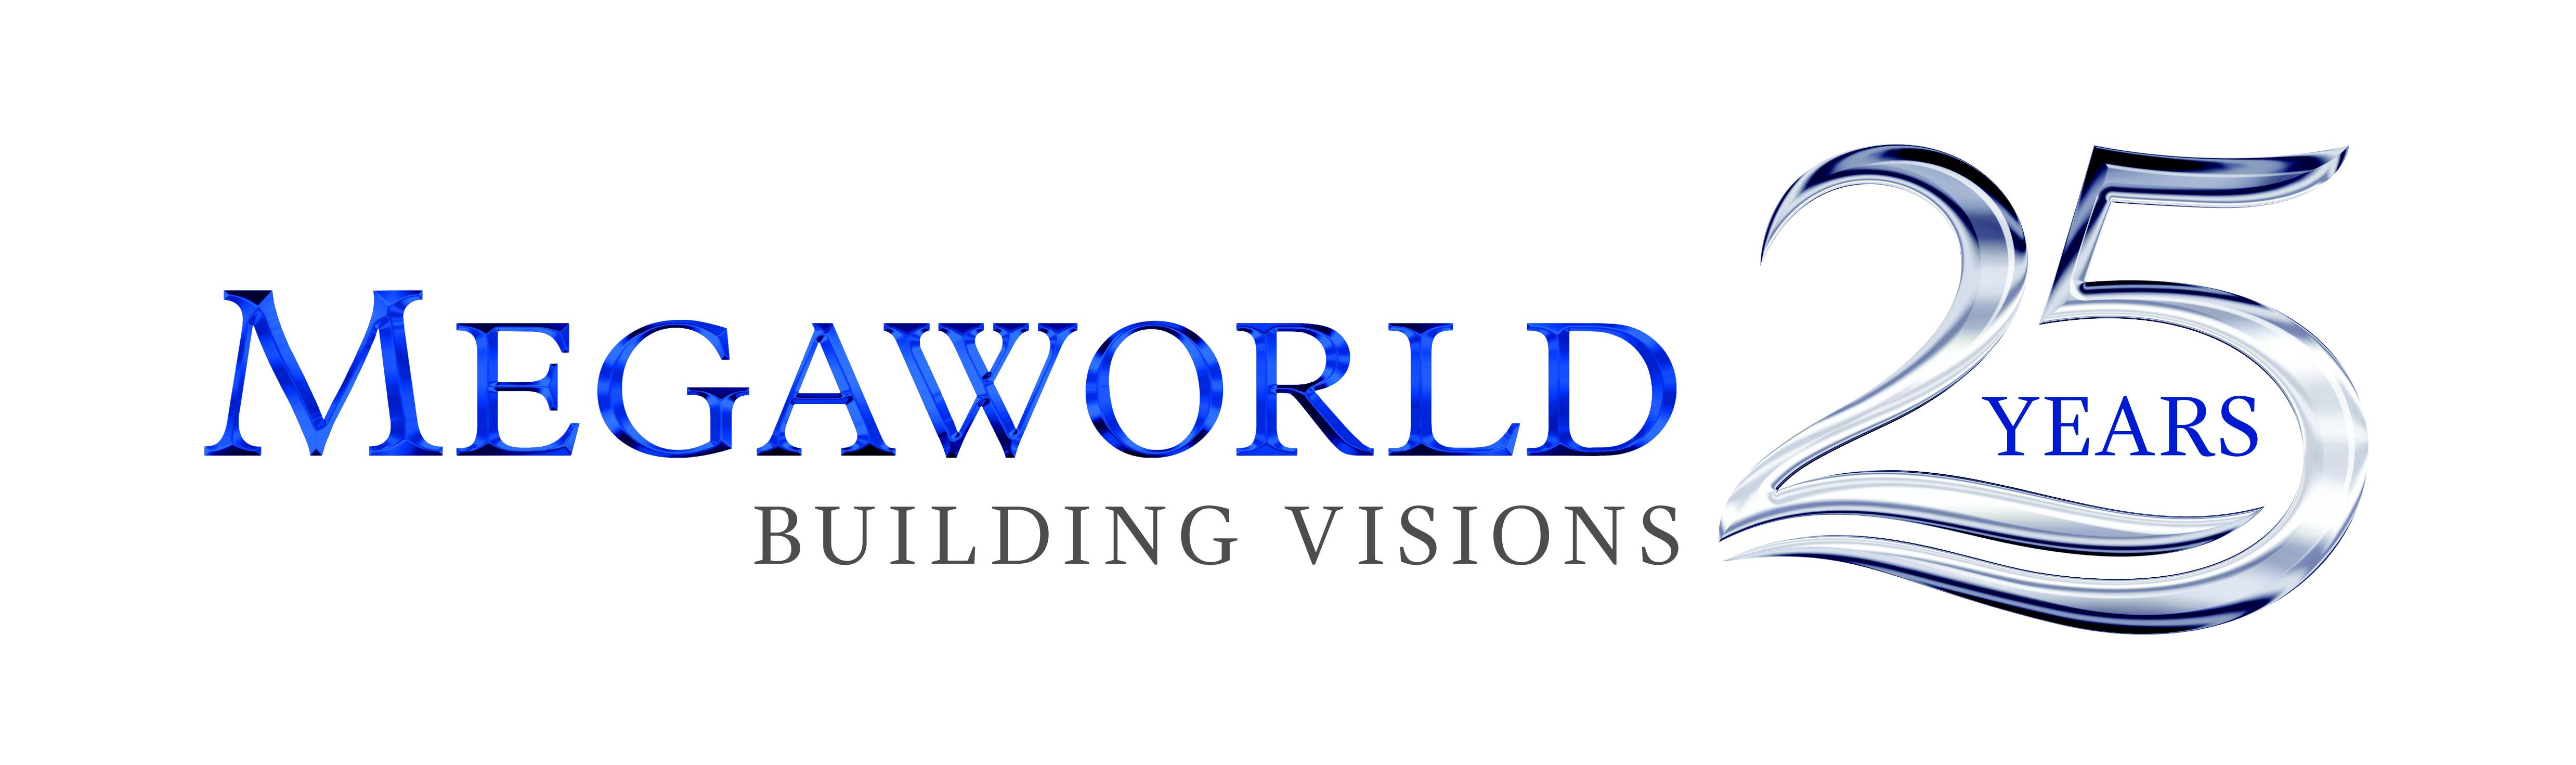 Megaworld Corporation (Makati) - Supremus Division